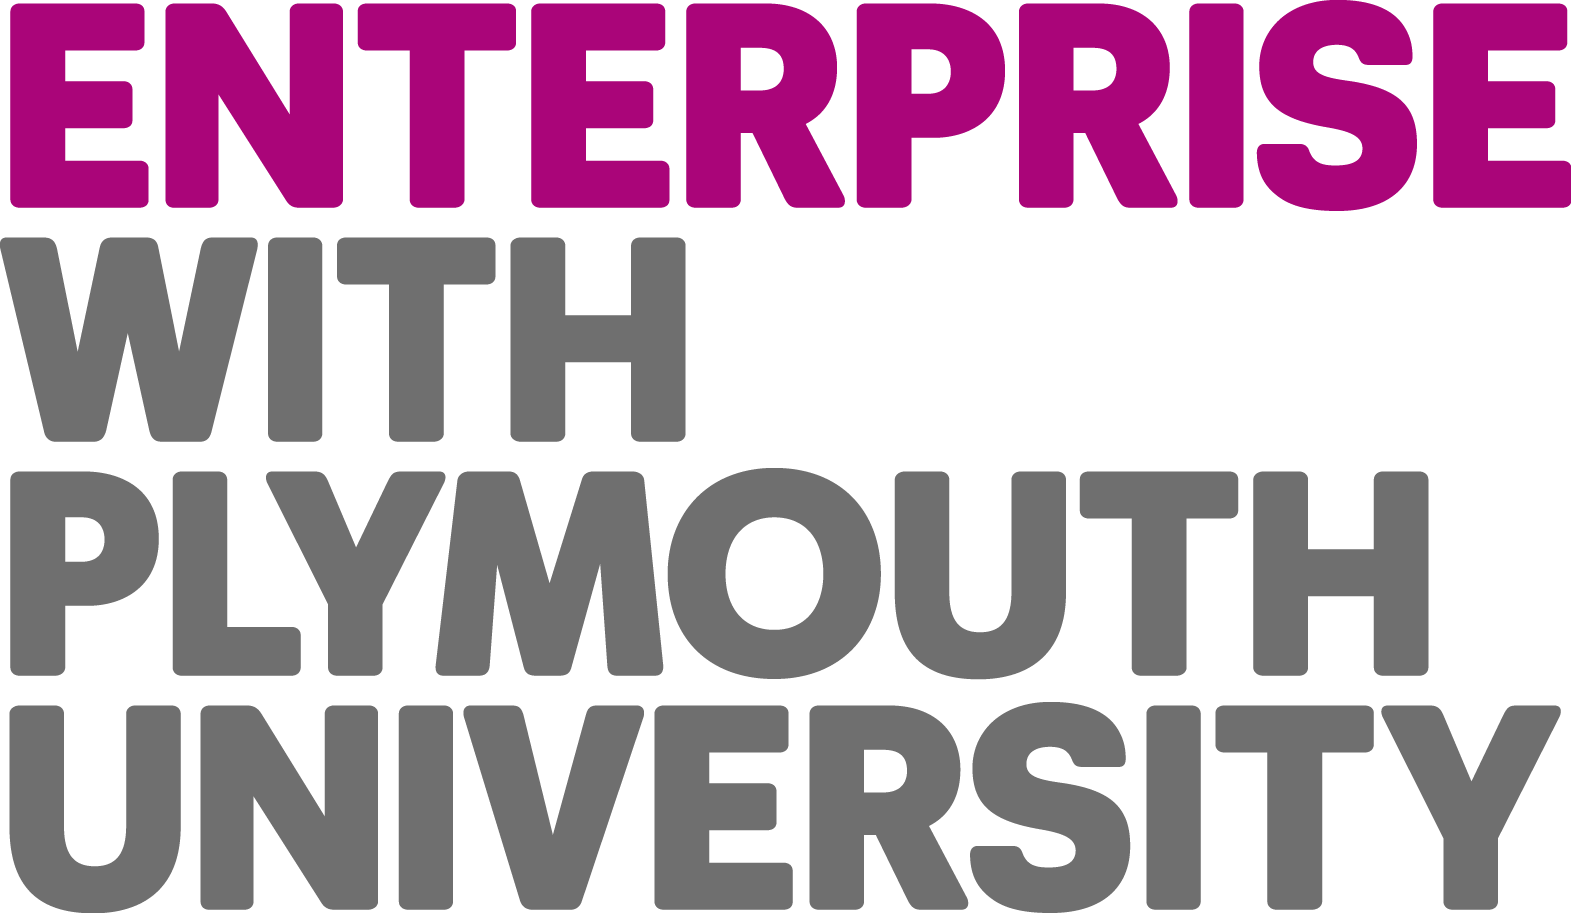 Plymouth University img-responsive